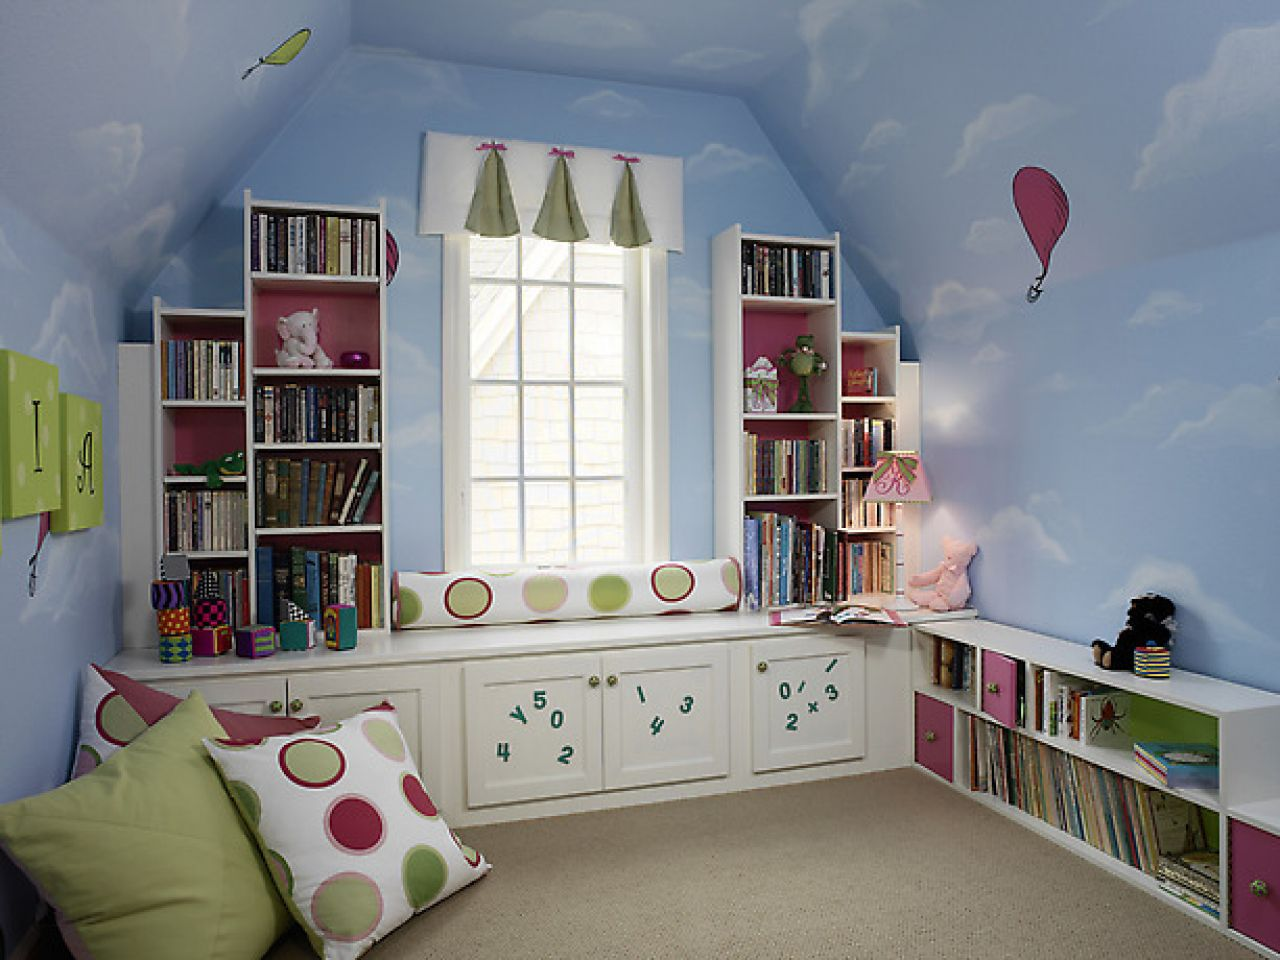 Appealing Teen Room Ideas with Tidy Bookshelves and Cozy Bay Seats Window near Big Cushions